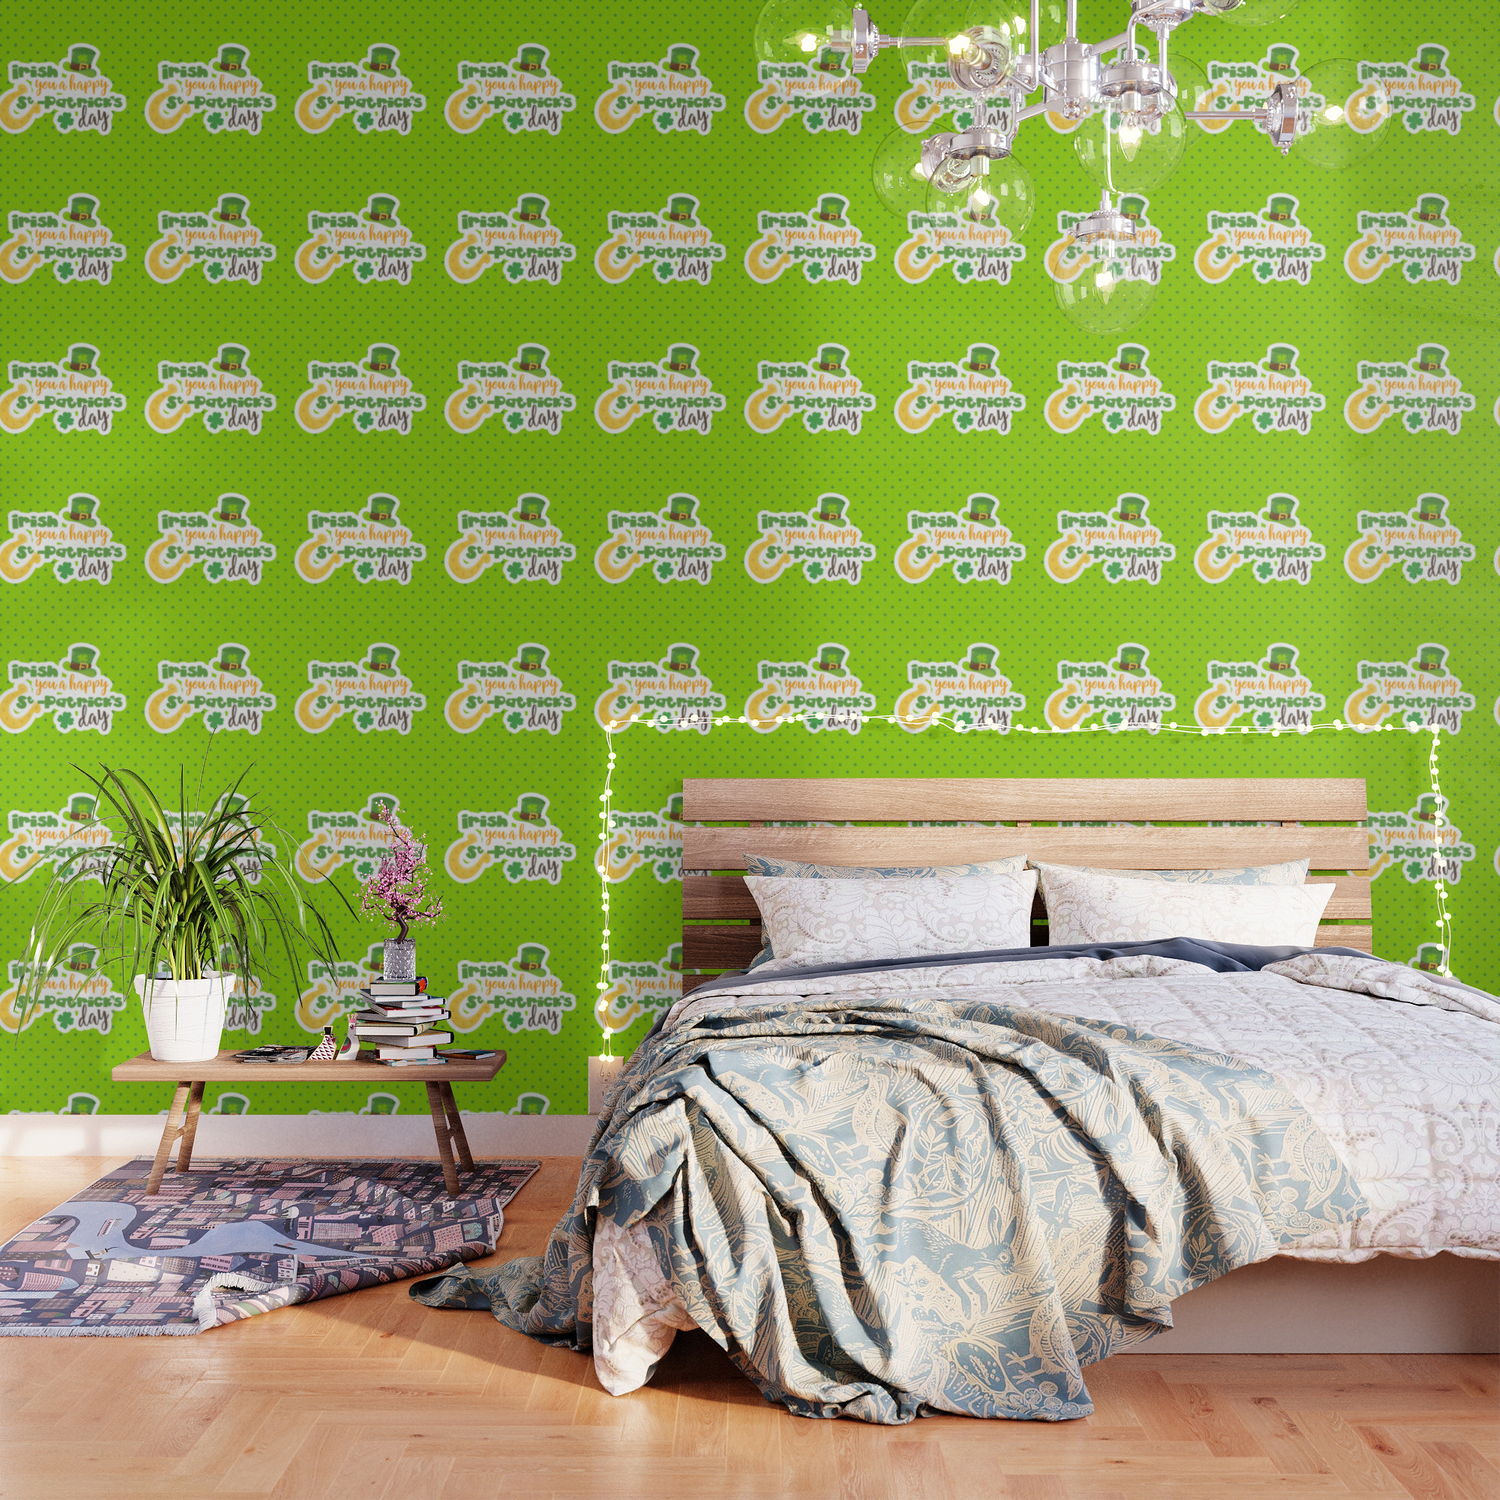 Irish You A Happy St Patrick S Day Wallpaper By Dec02 Society6